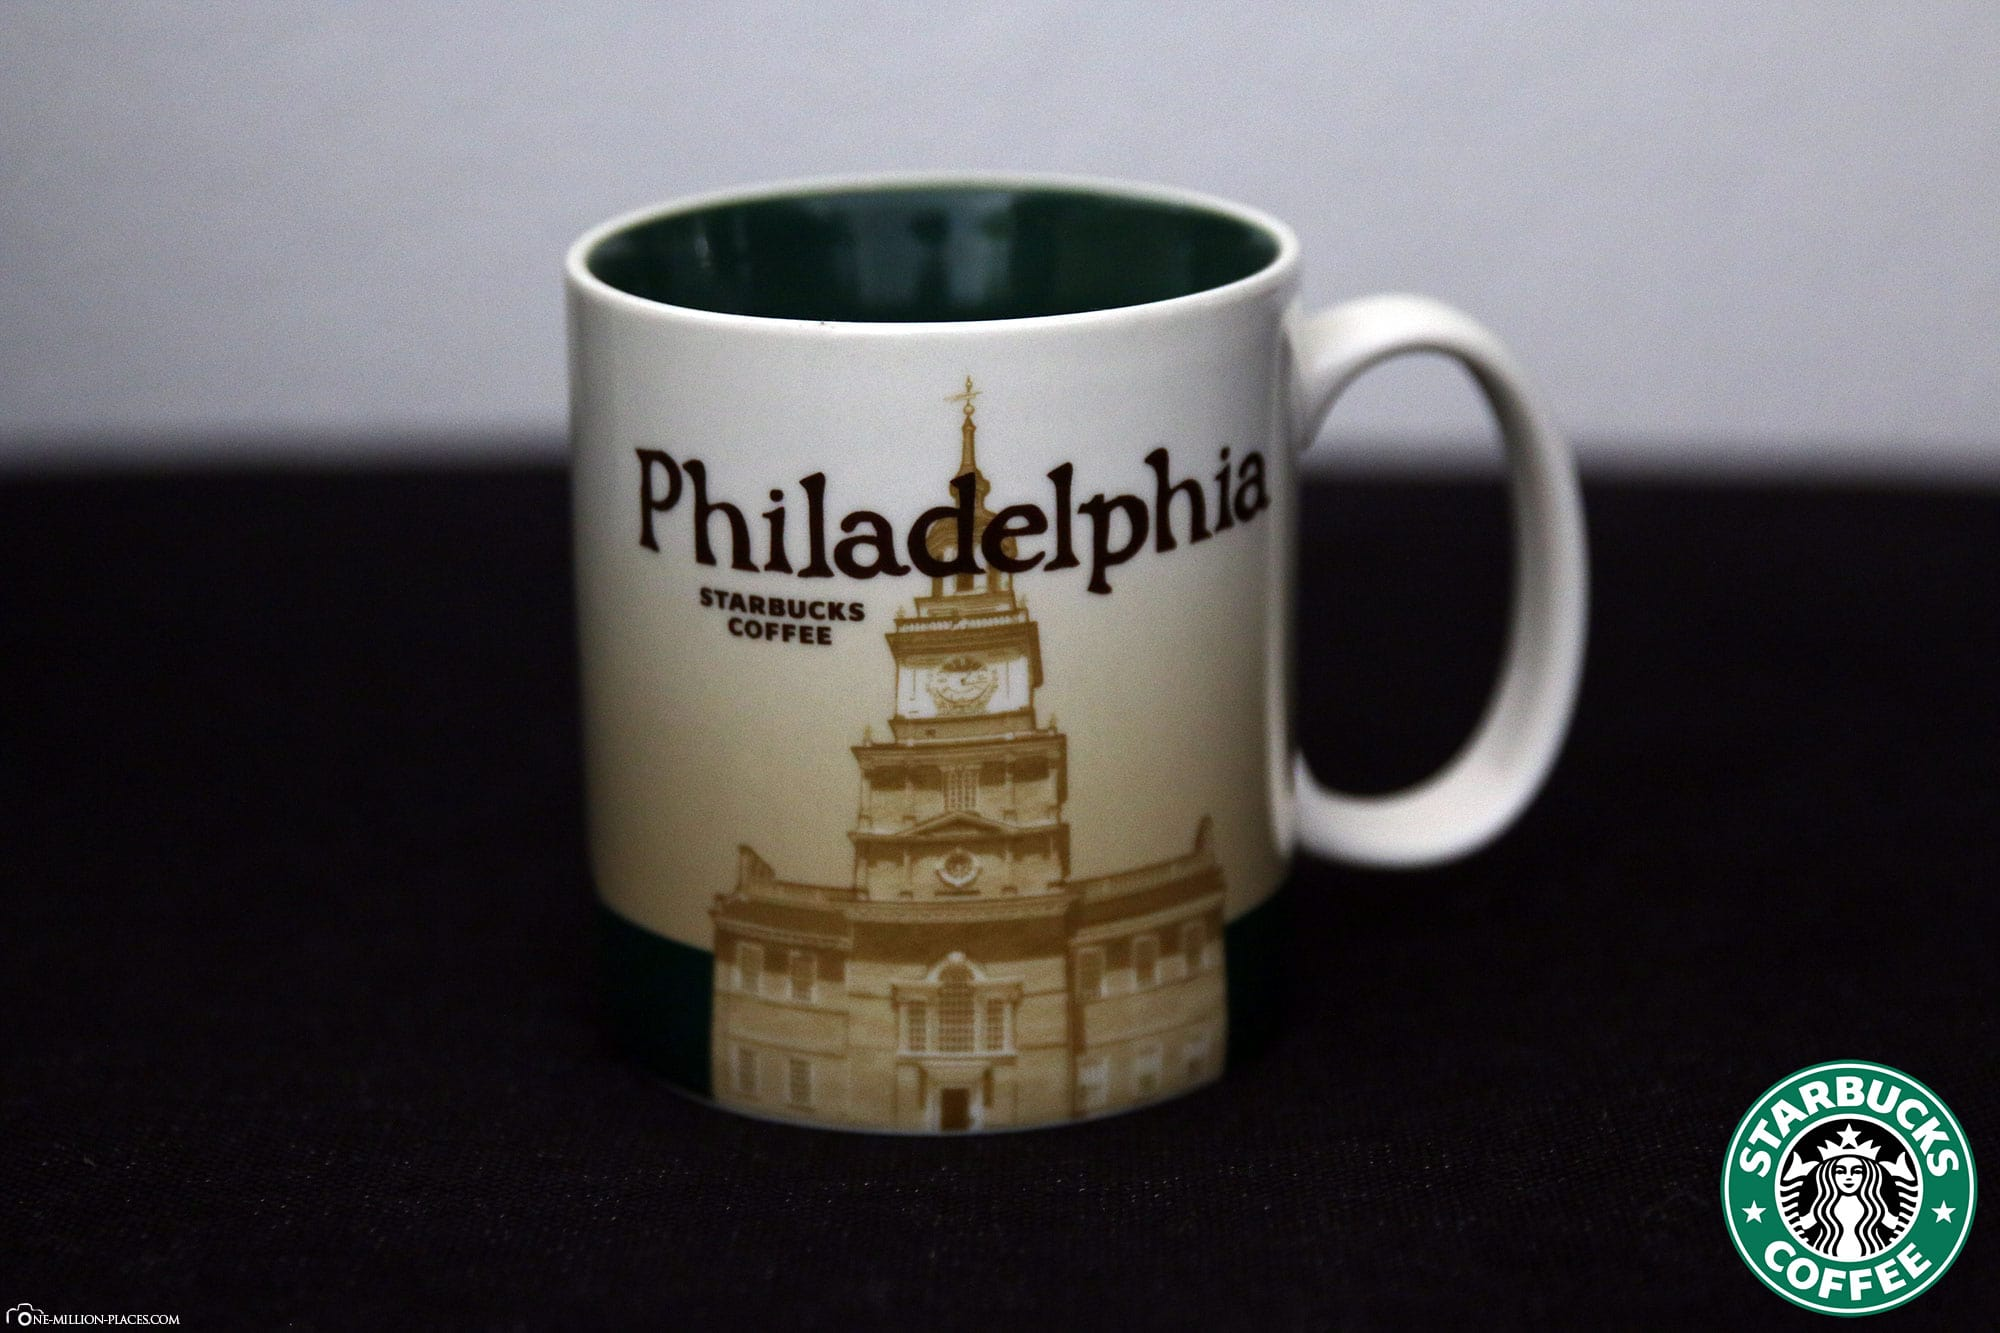 Philadelphia, Starbucks Tasse, Global Icon Serie, City Mugs, Sammlung, USA, Reisebericht